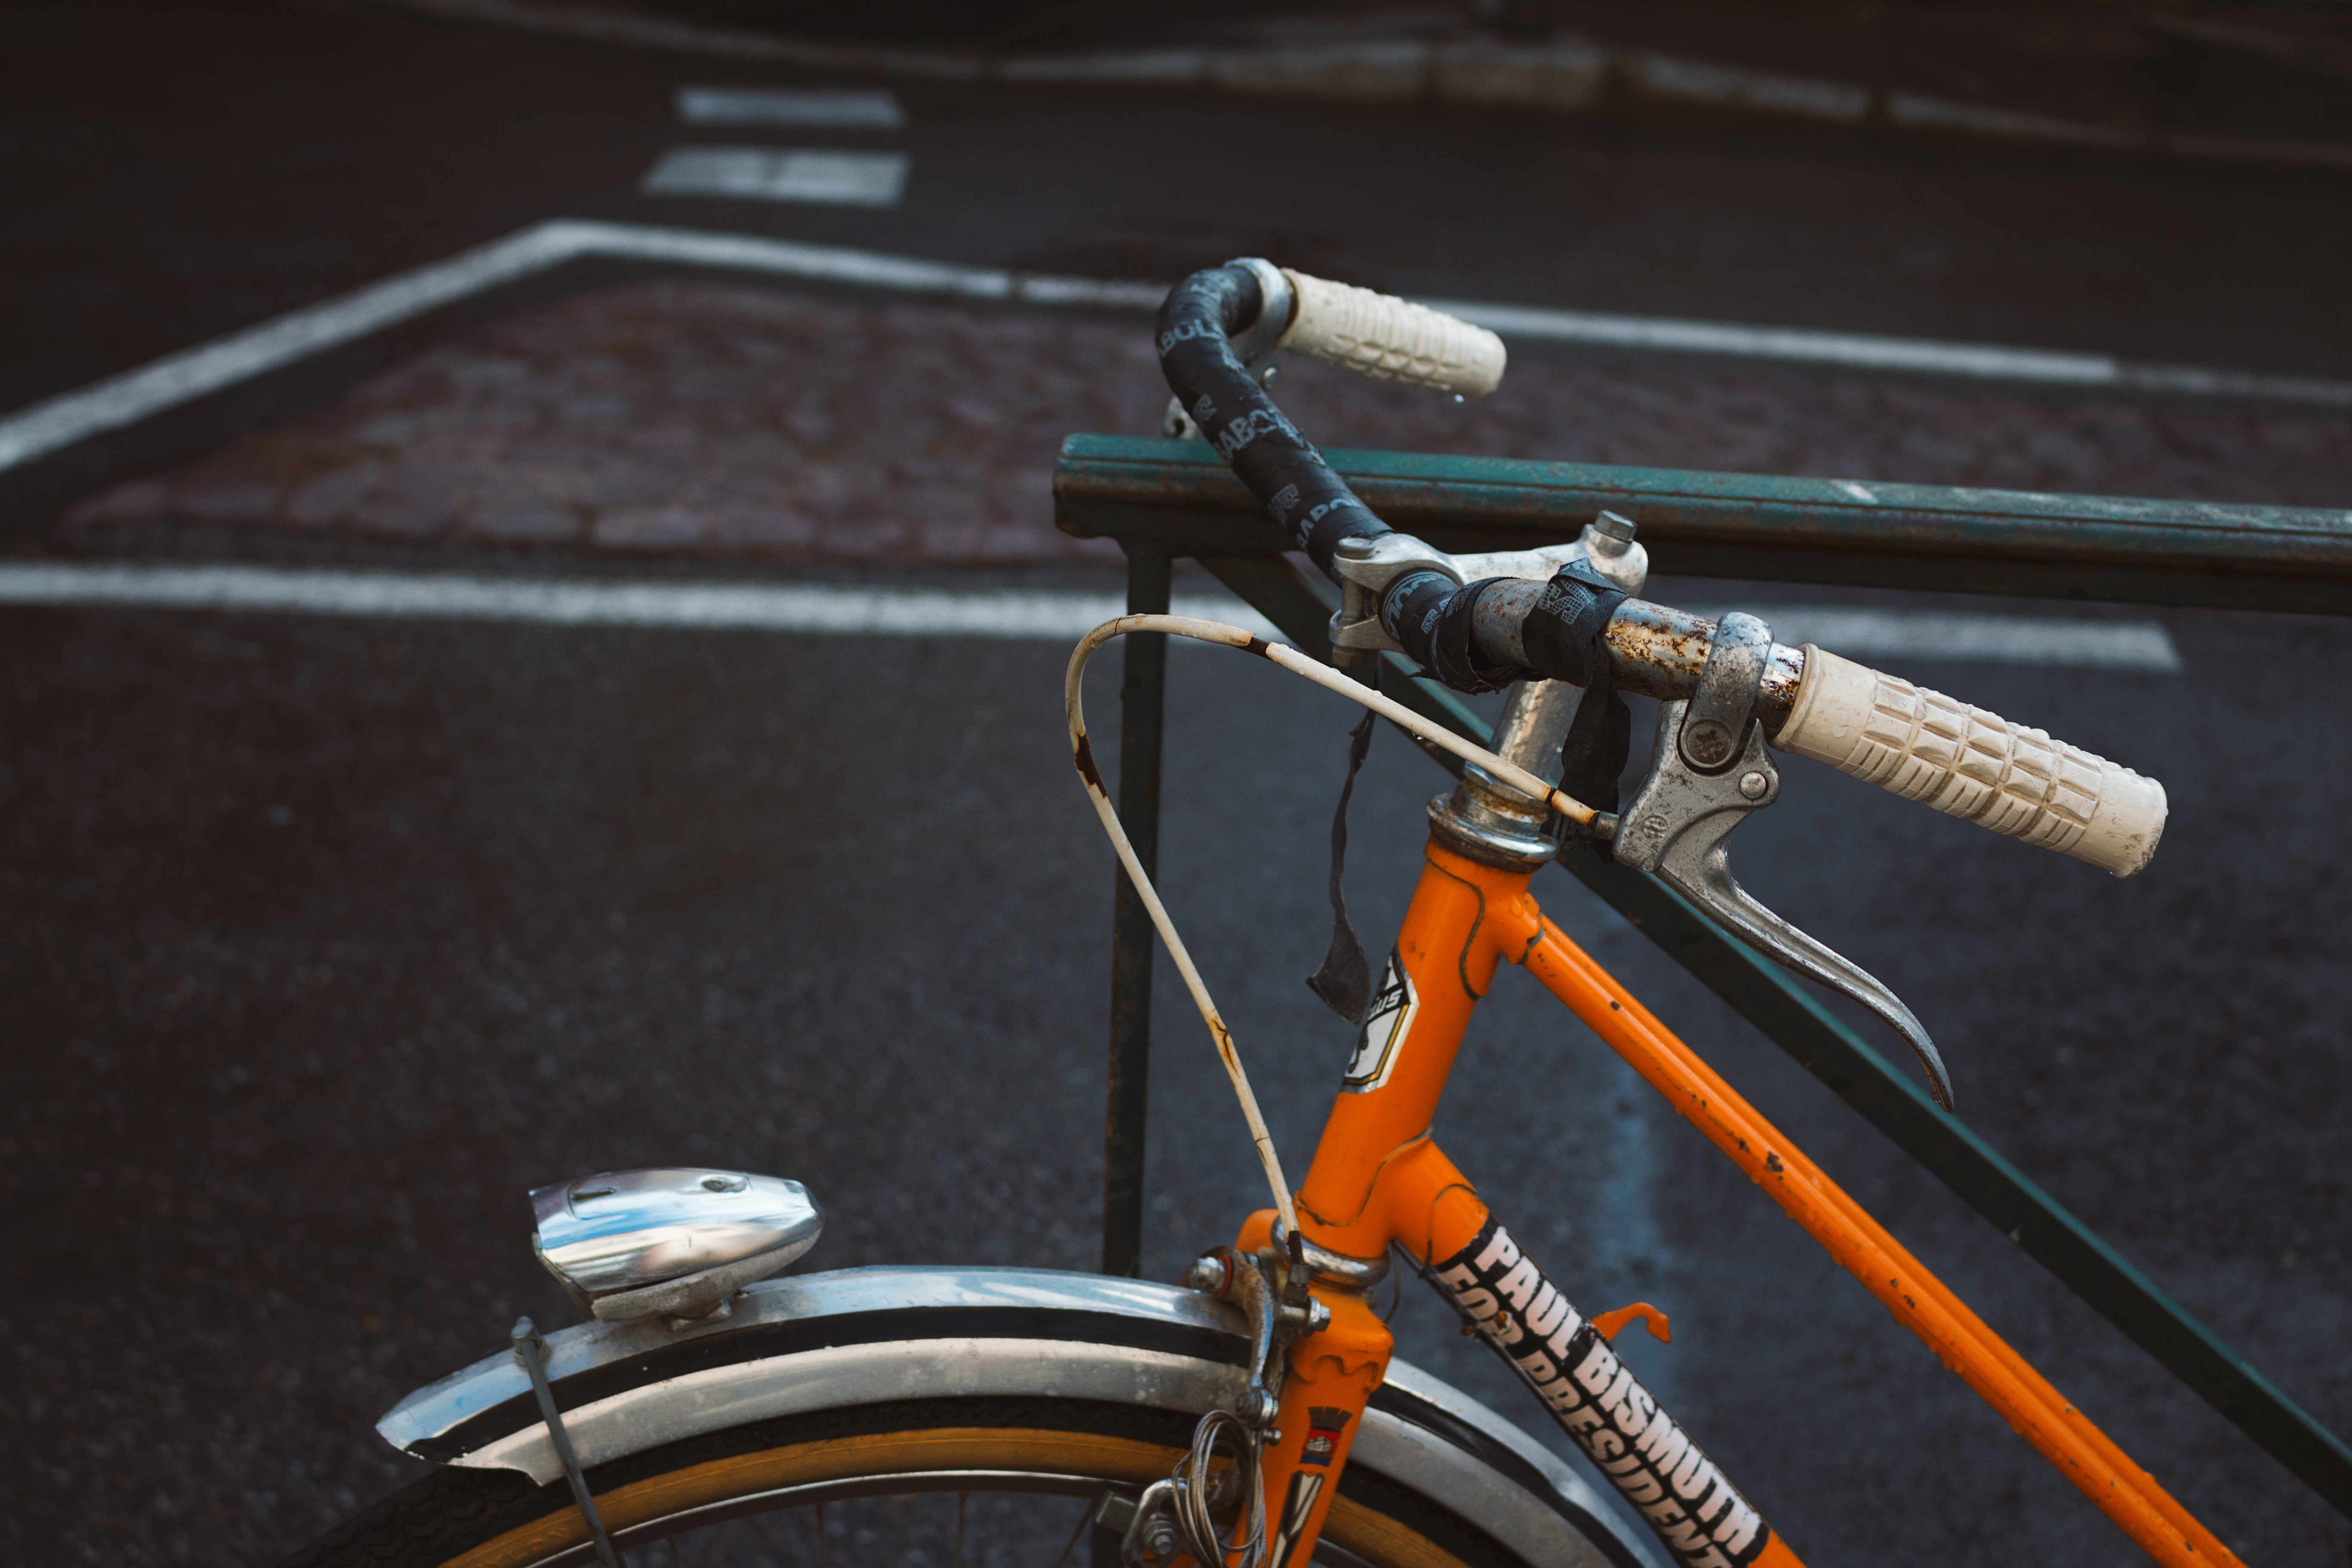 Orange Bicycle, Bicycle, Cycle, Cycling, Exercise, HQ Photo